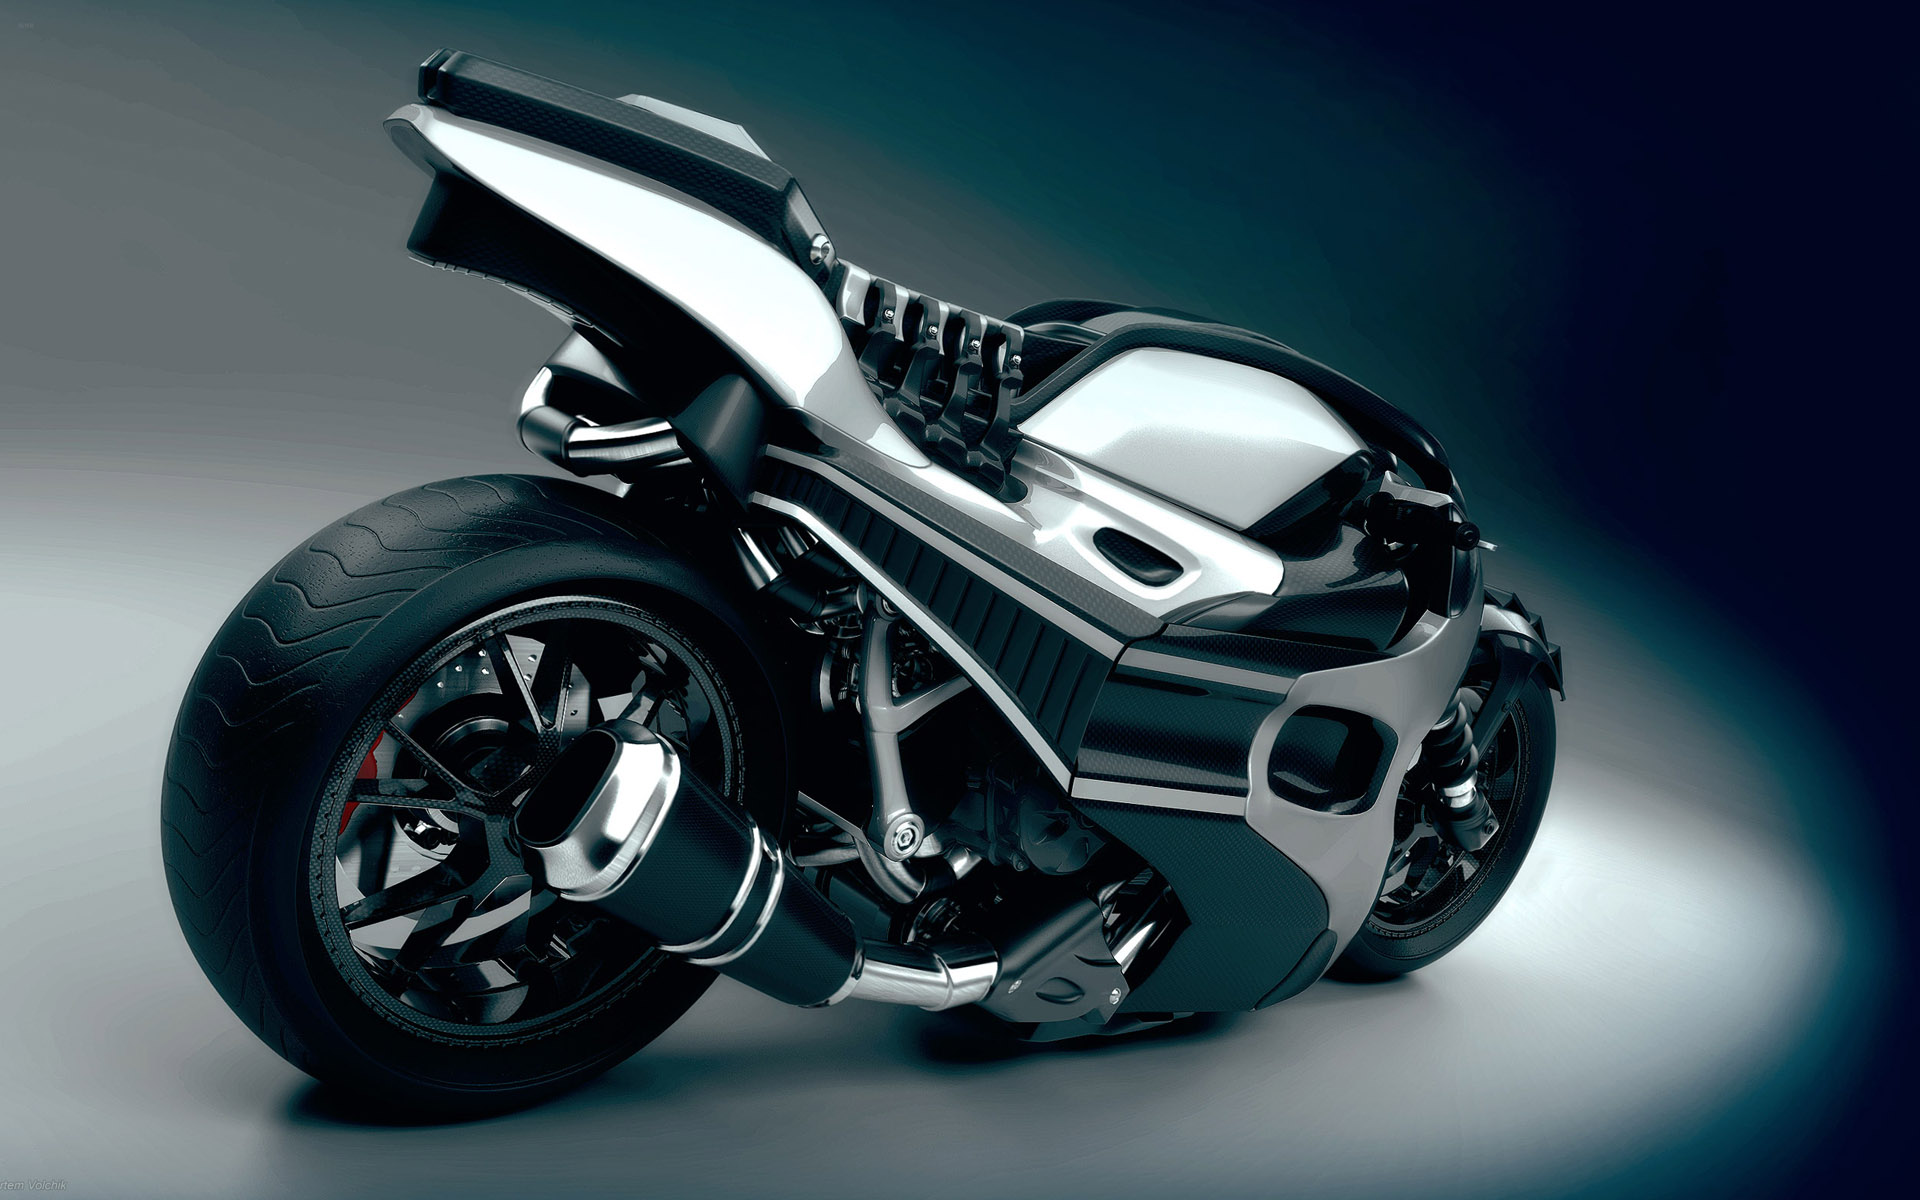 Pin Futuristic Motorcycles Bmw S 1000 Rr 2010 New Galleries on HD Wallpaper